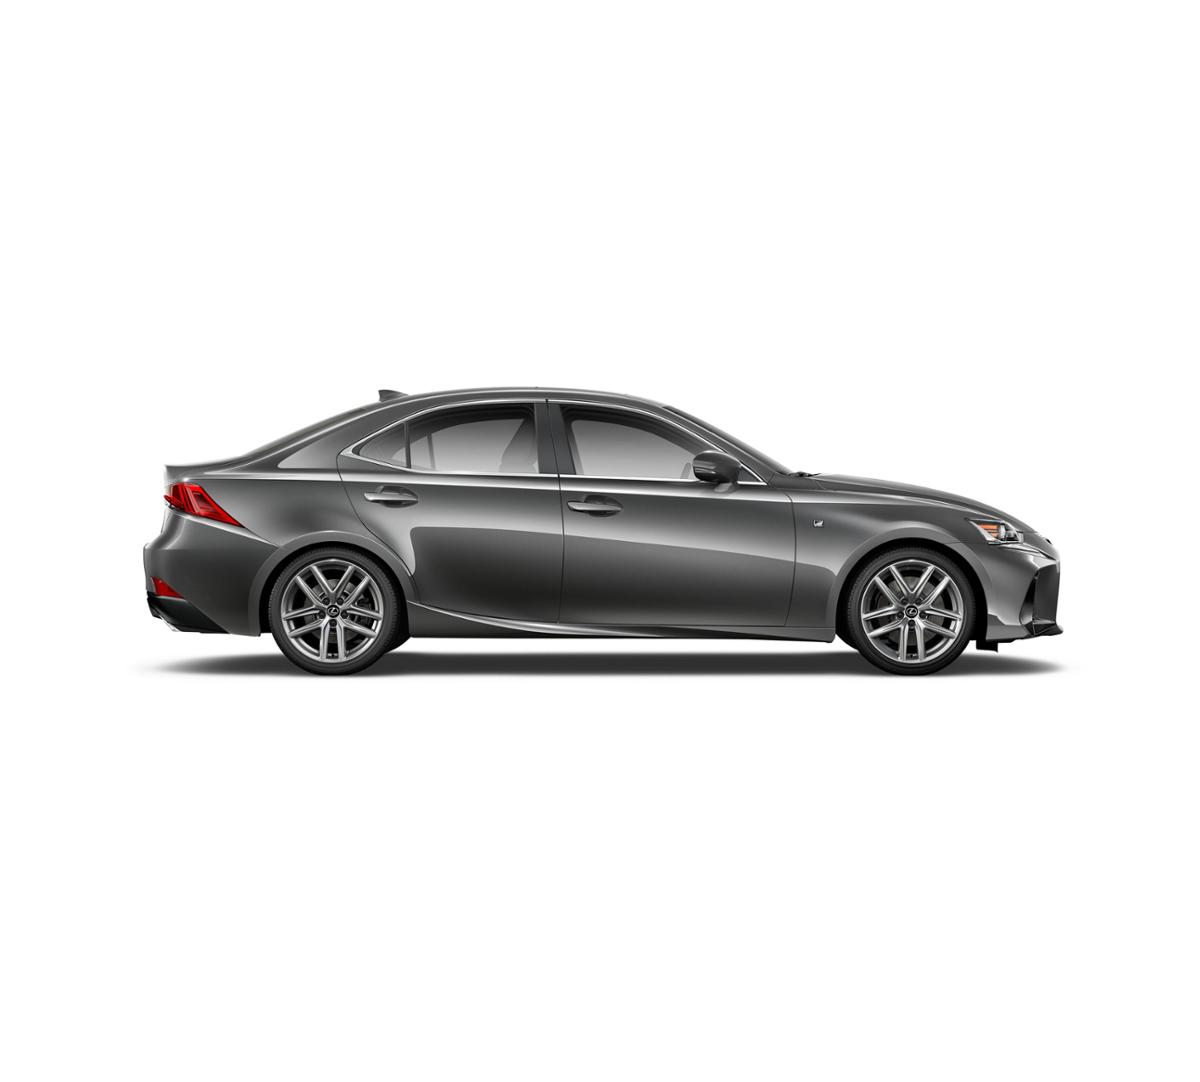 new 2019 nebula gray pearl lexus is 300 for sale in white plains ny w19403. Black Bedroom Furniture Sets. Home Design Ideas